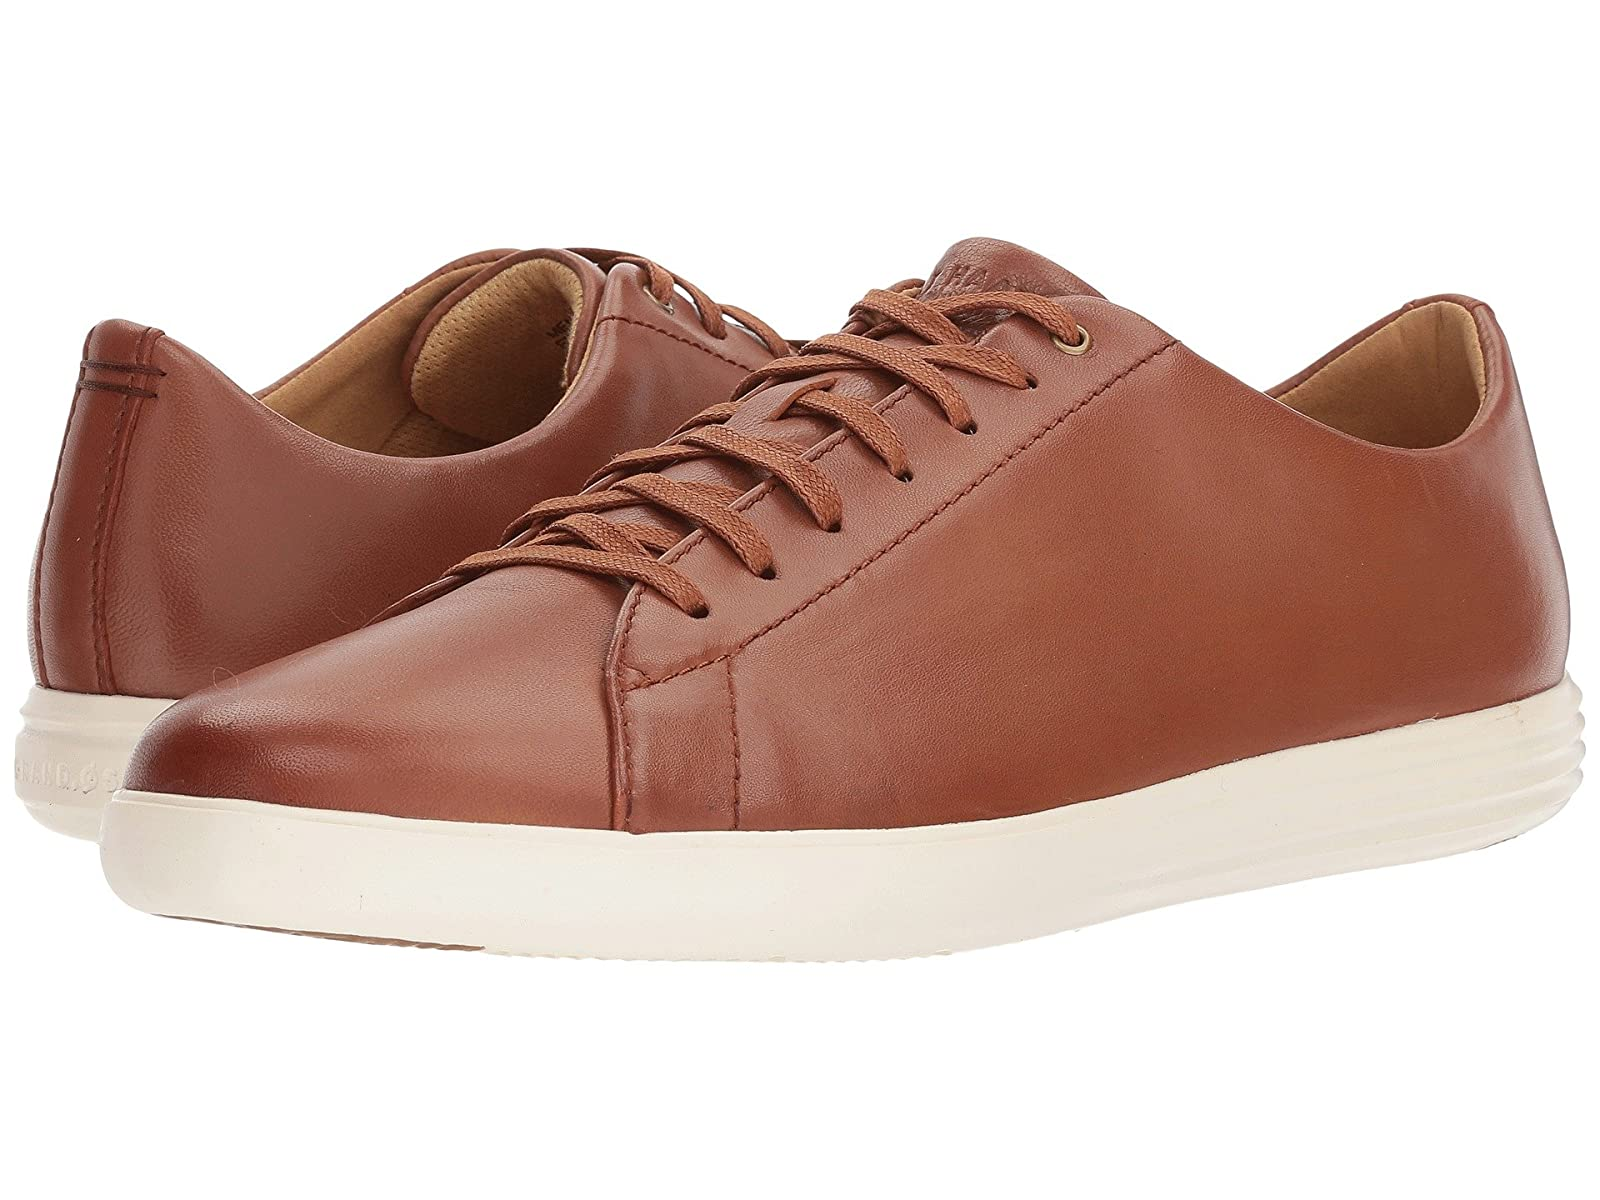 Cole Haan Grand Crosscourt IICheap and distinctive eye-catching shoes